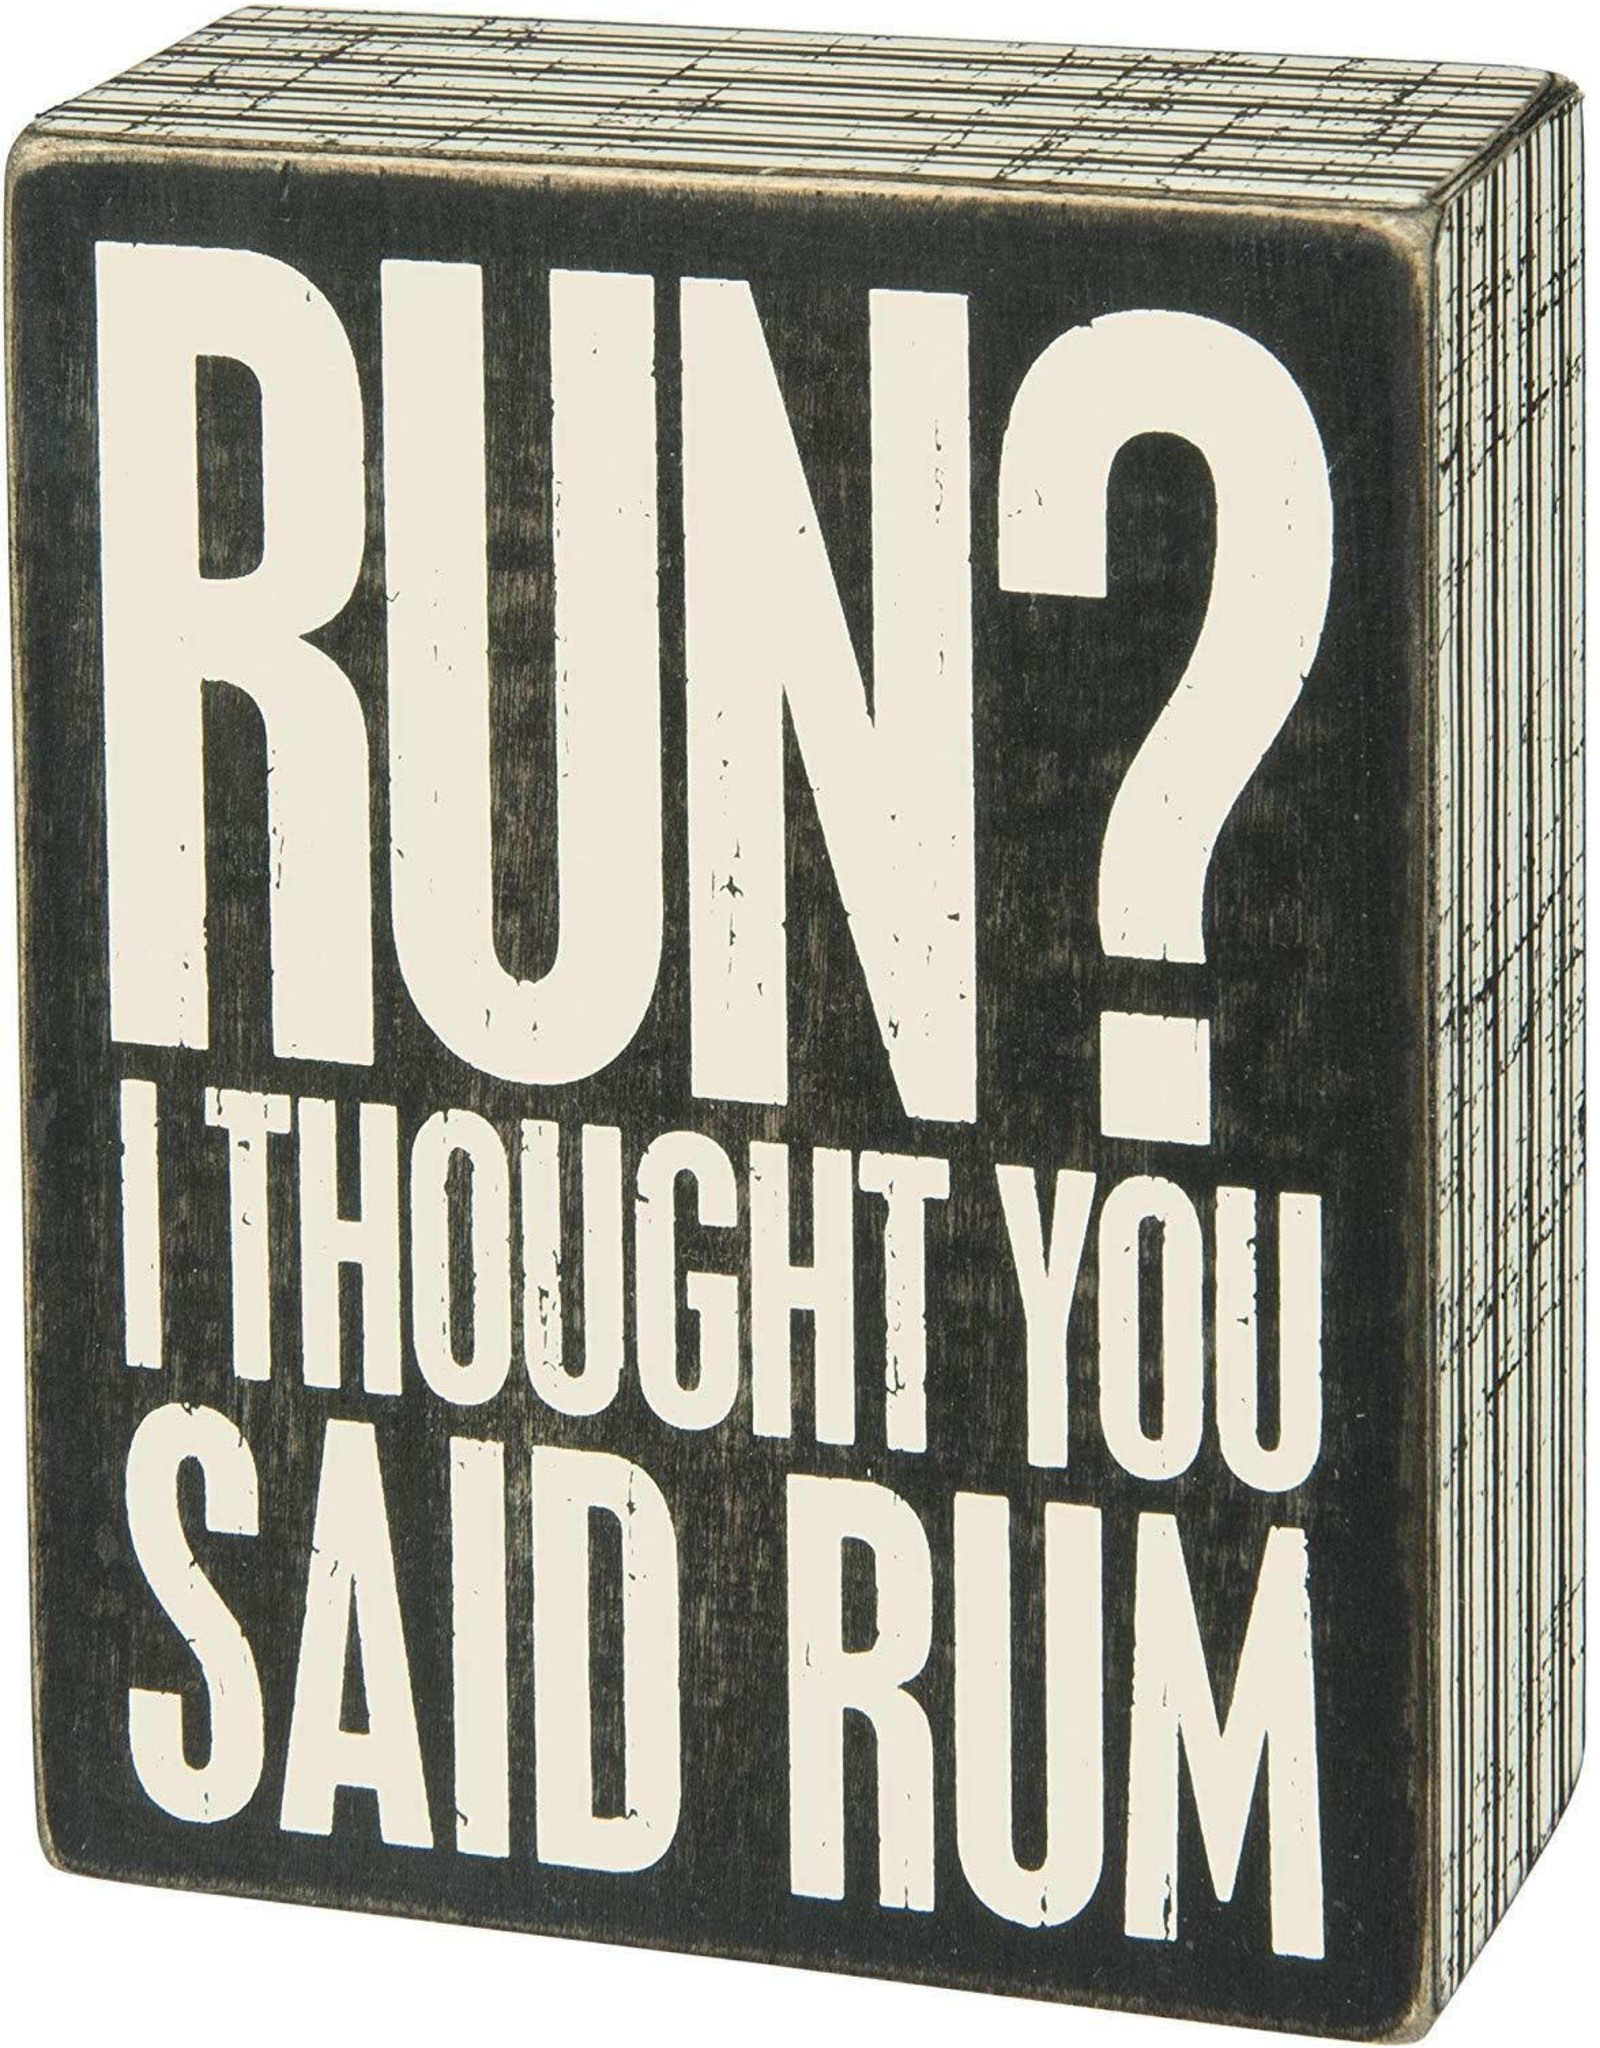 PRIMITIVES BY KATHY ATTITUDE BLOCK SIGNS RUN? THOUGHT YOU SAID RUM